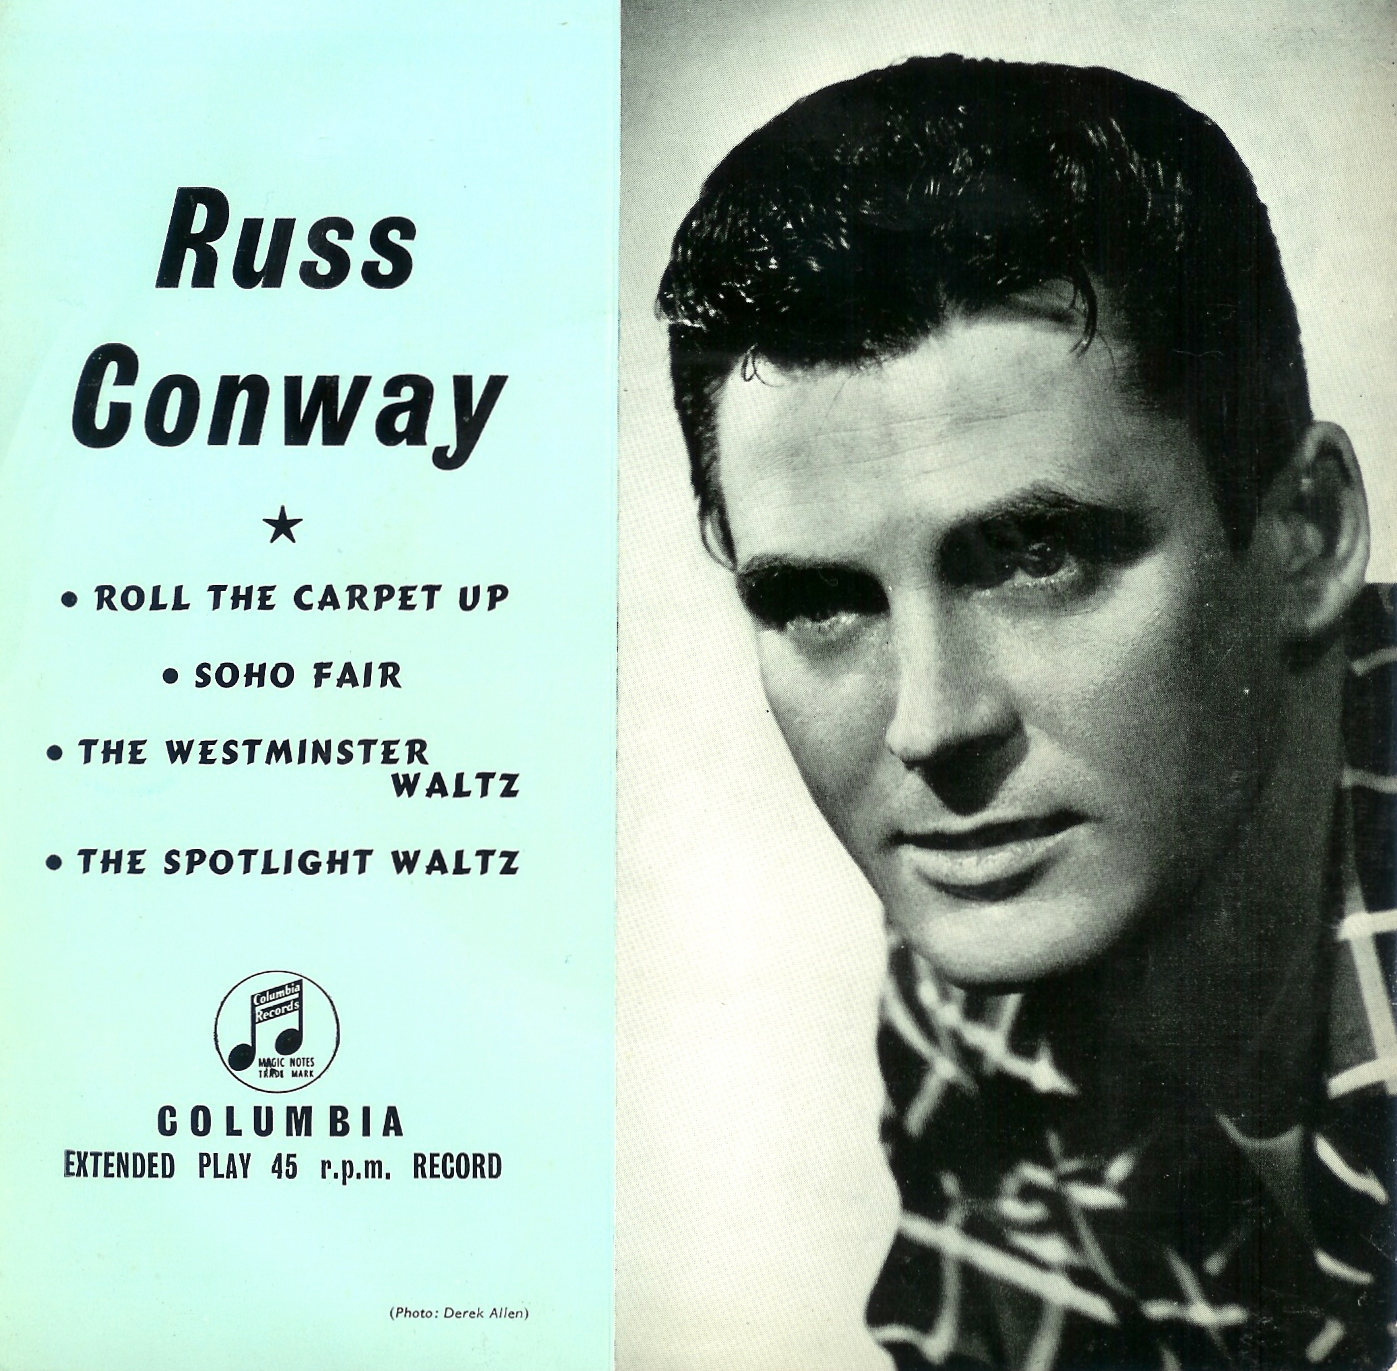 Russ conway roulette